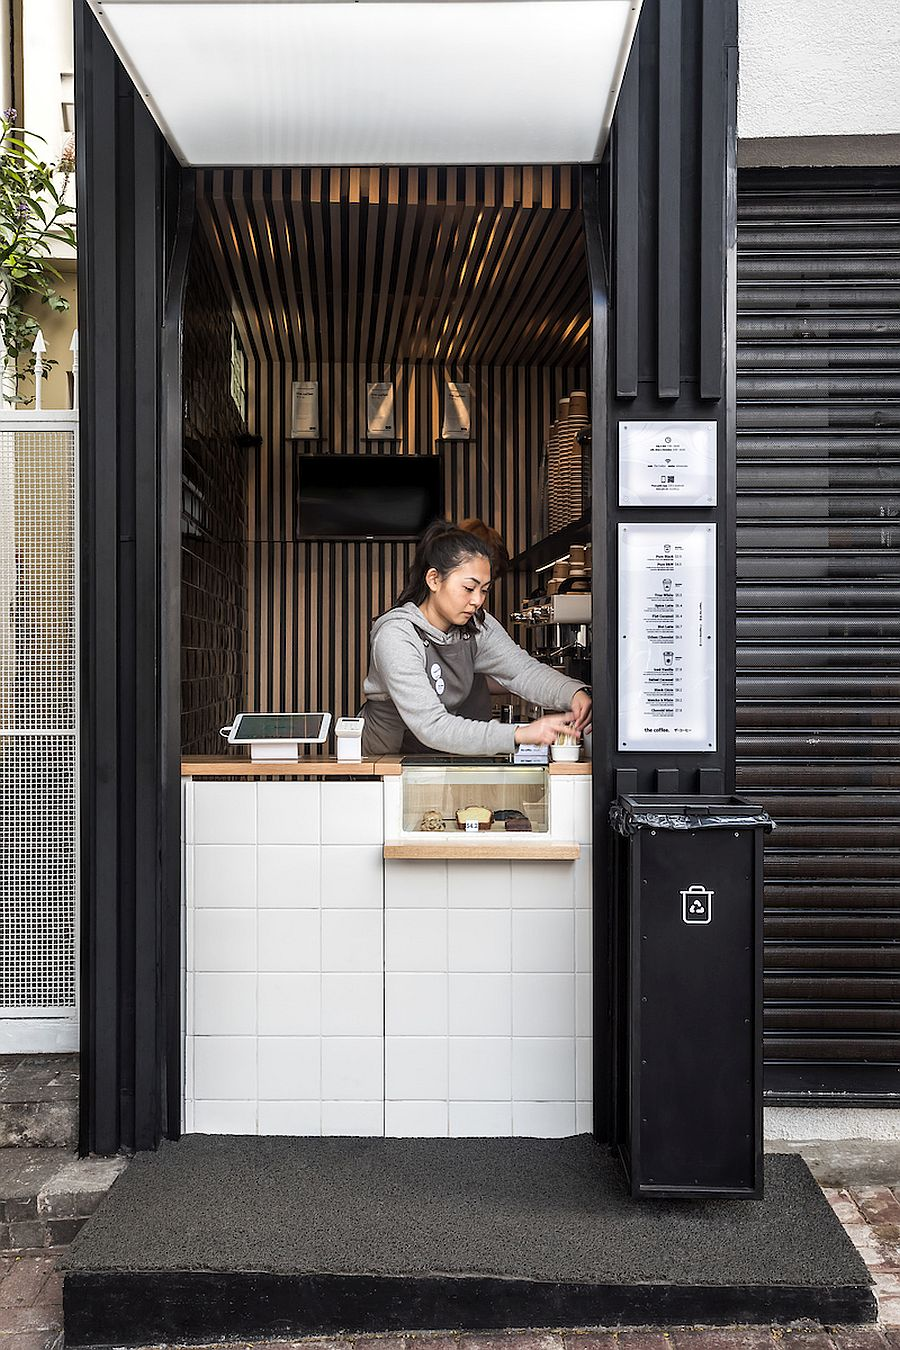 Small cube design of the coffee shop gives it space-savyy appeal